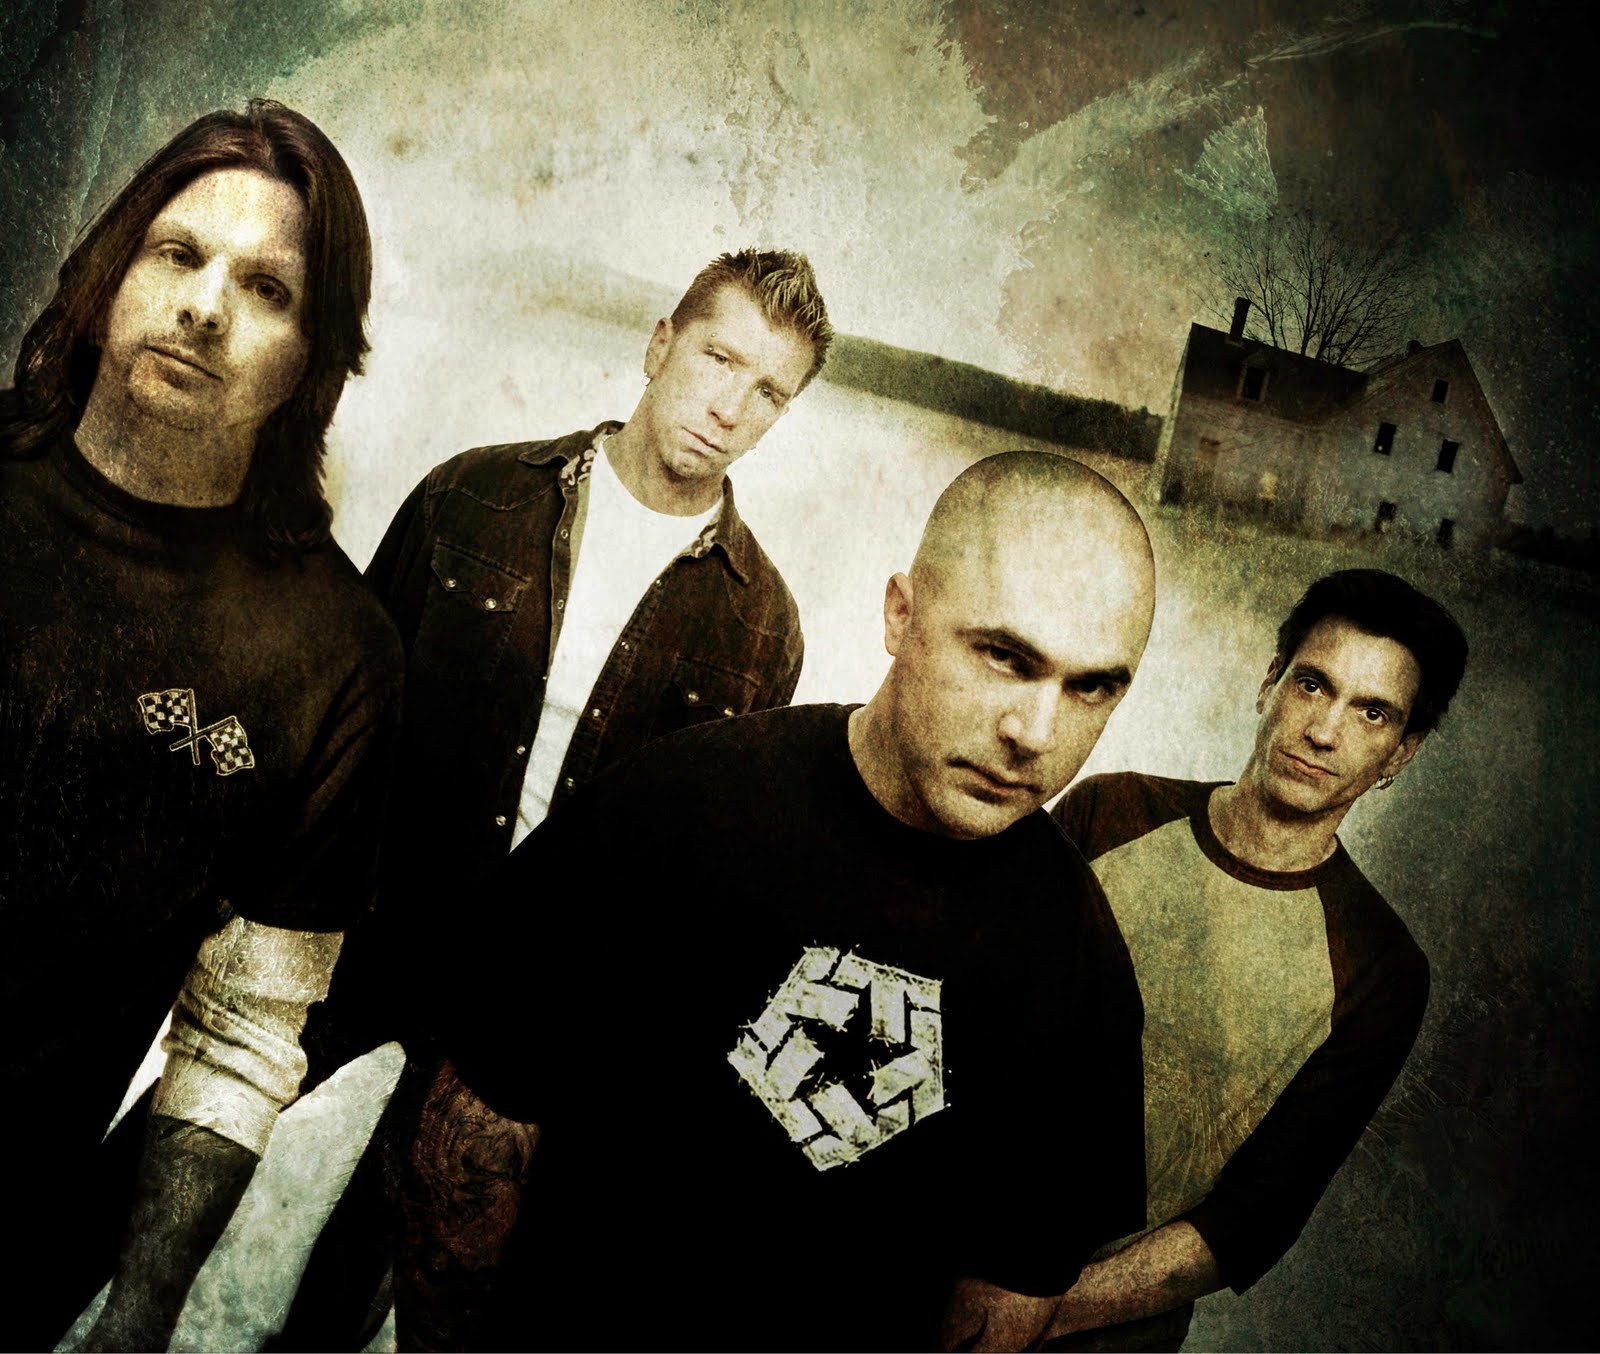 Groupe Staind